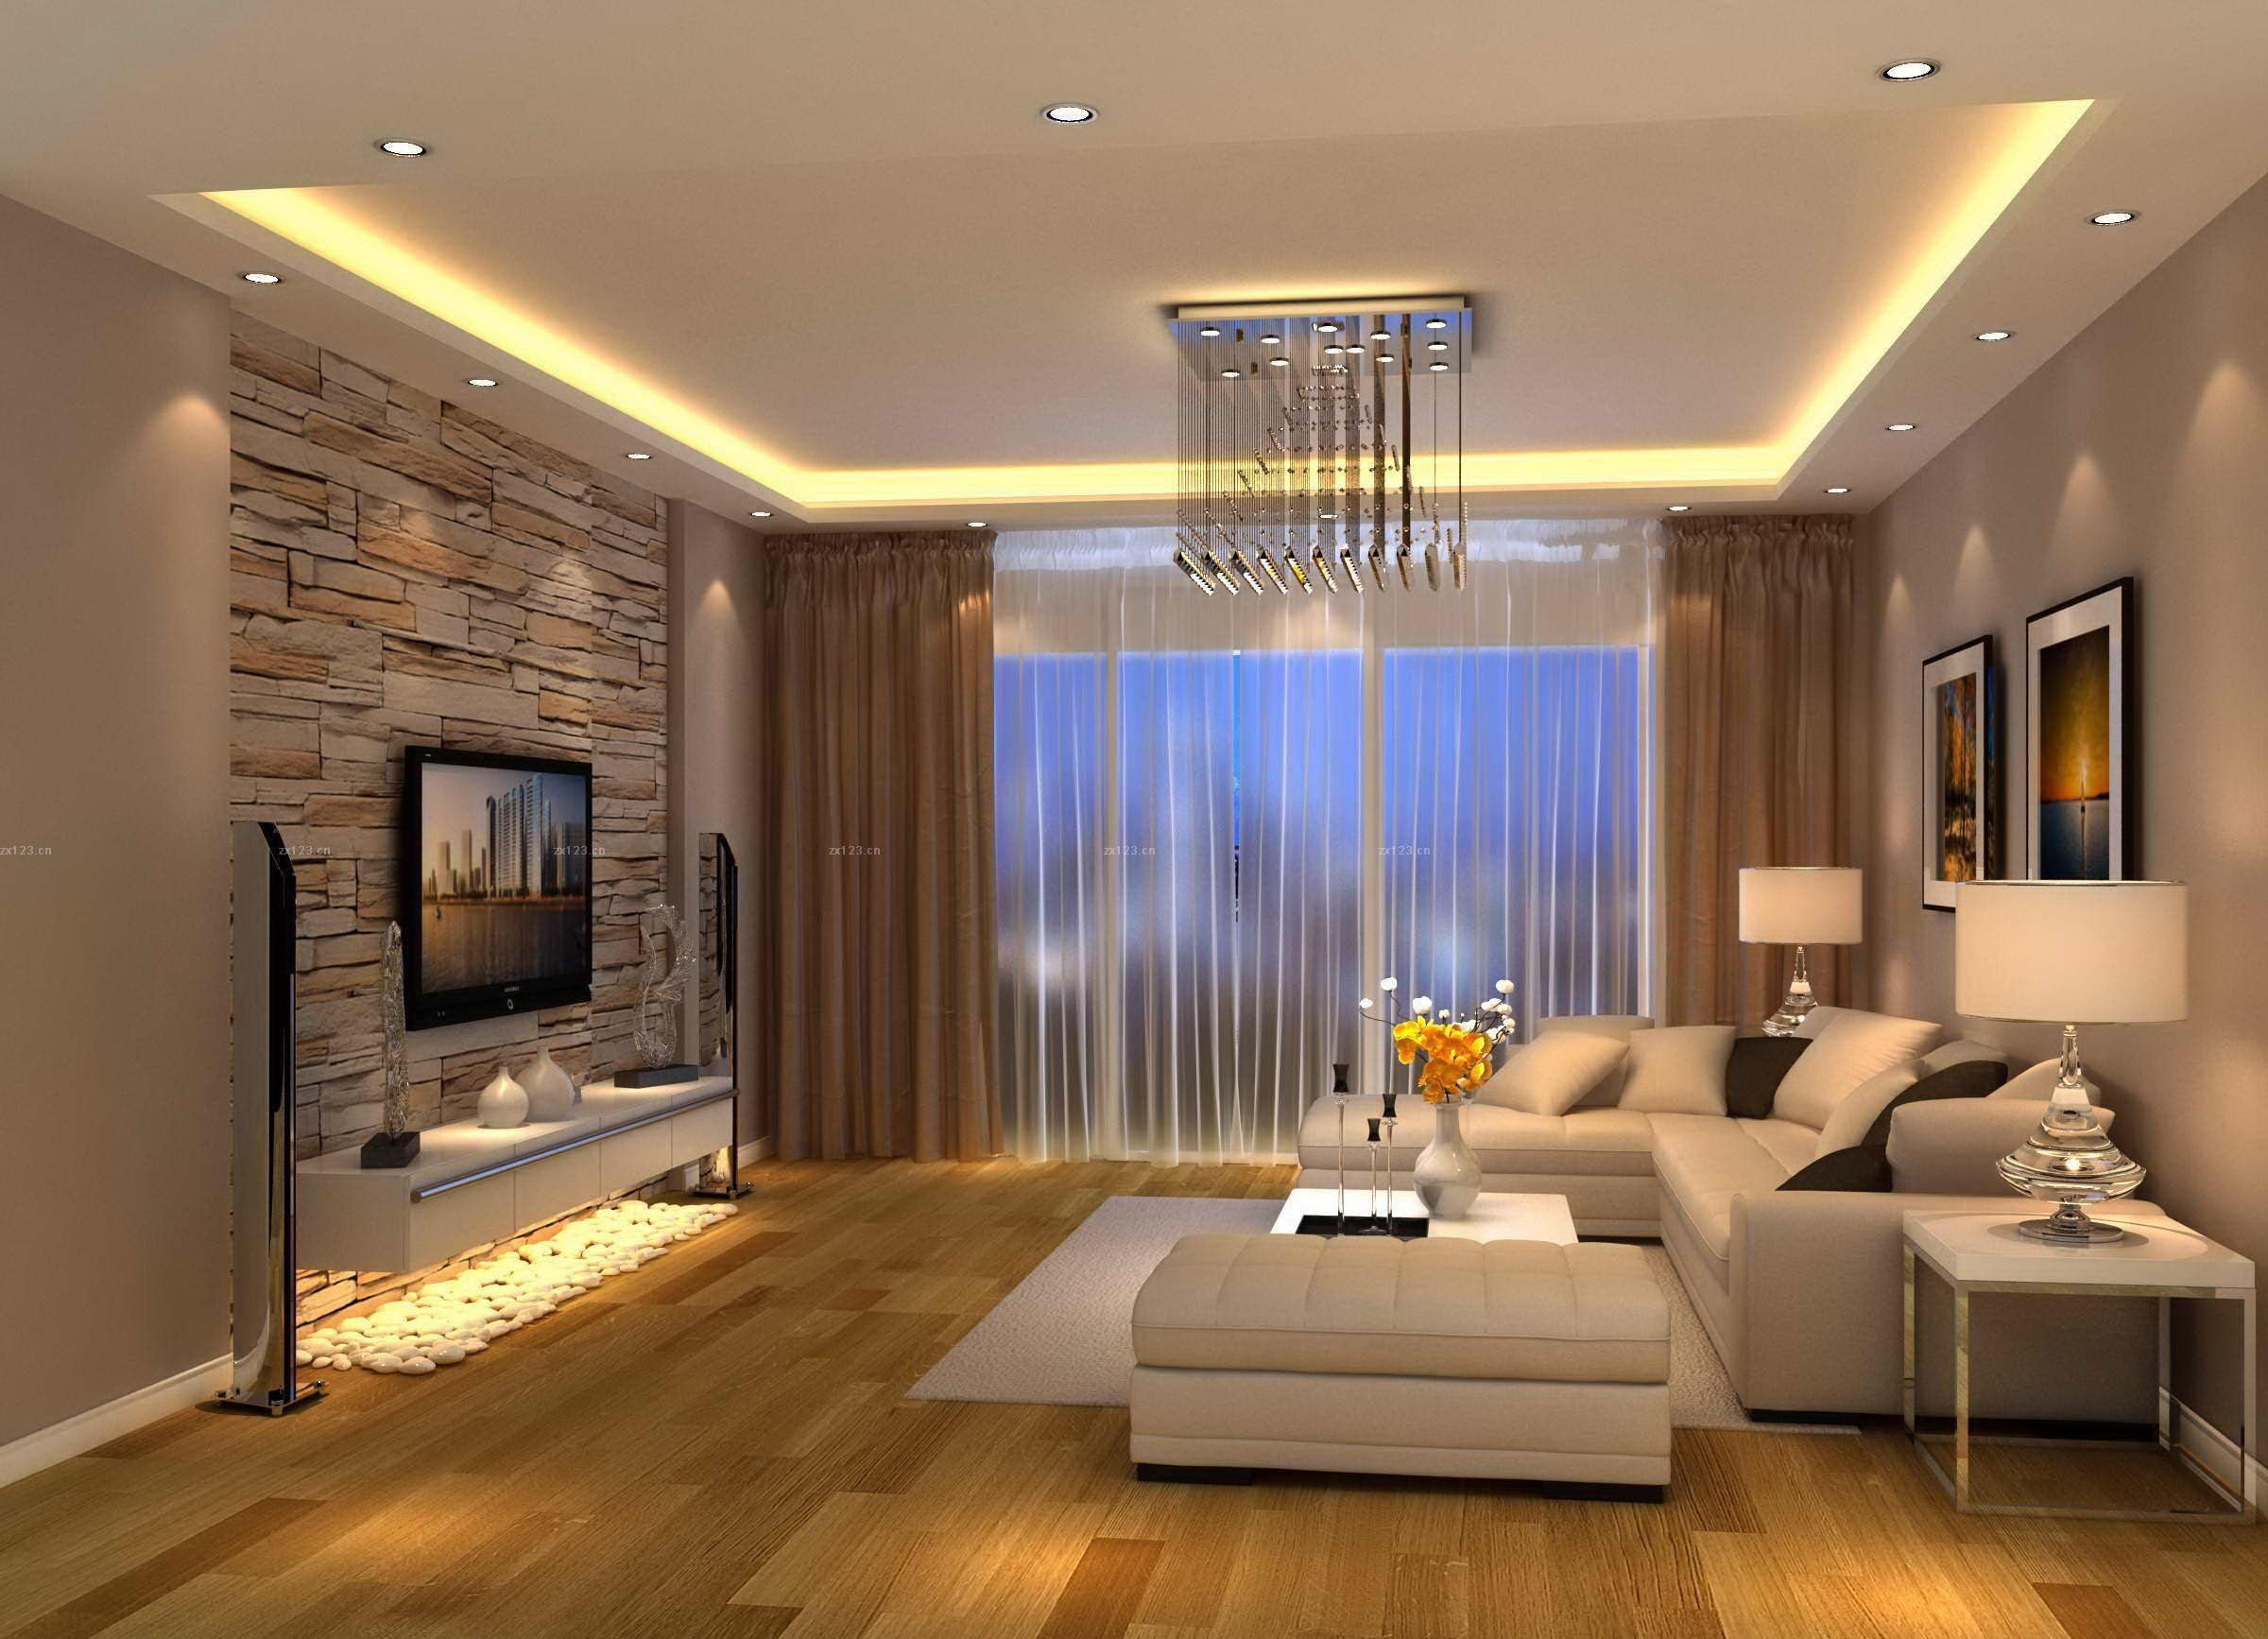 51 Best Living Room Ideas - Stylish Living Room Decorating Designs